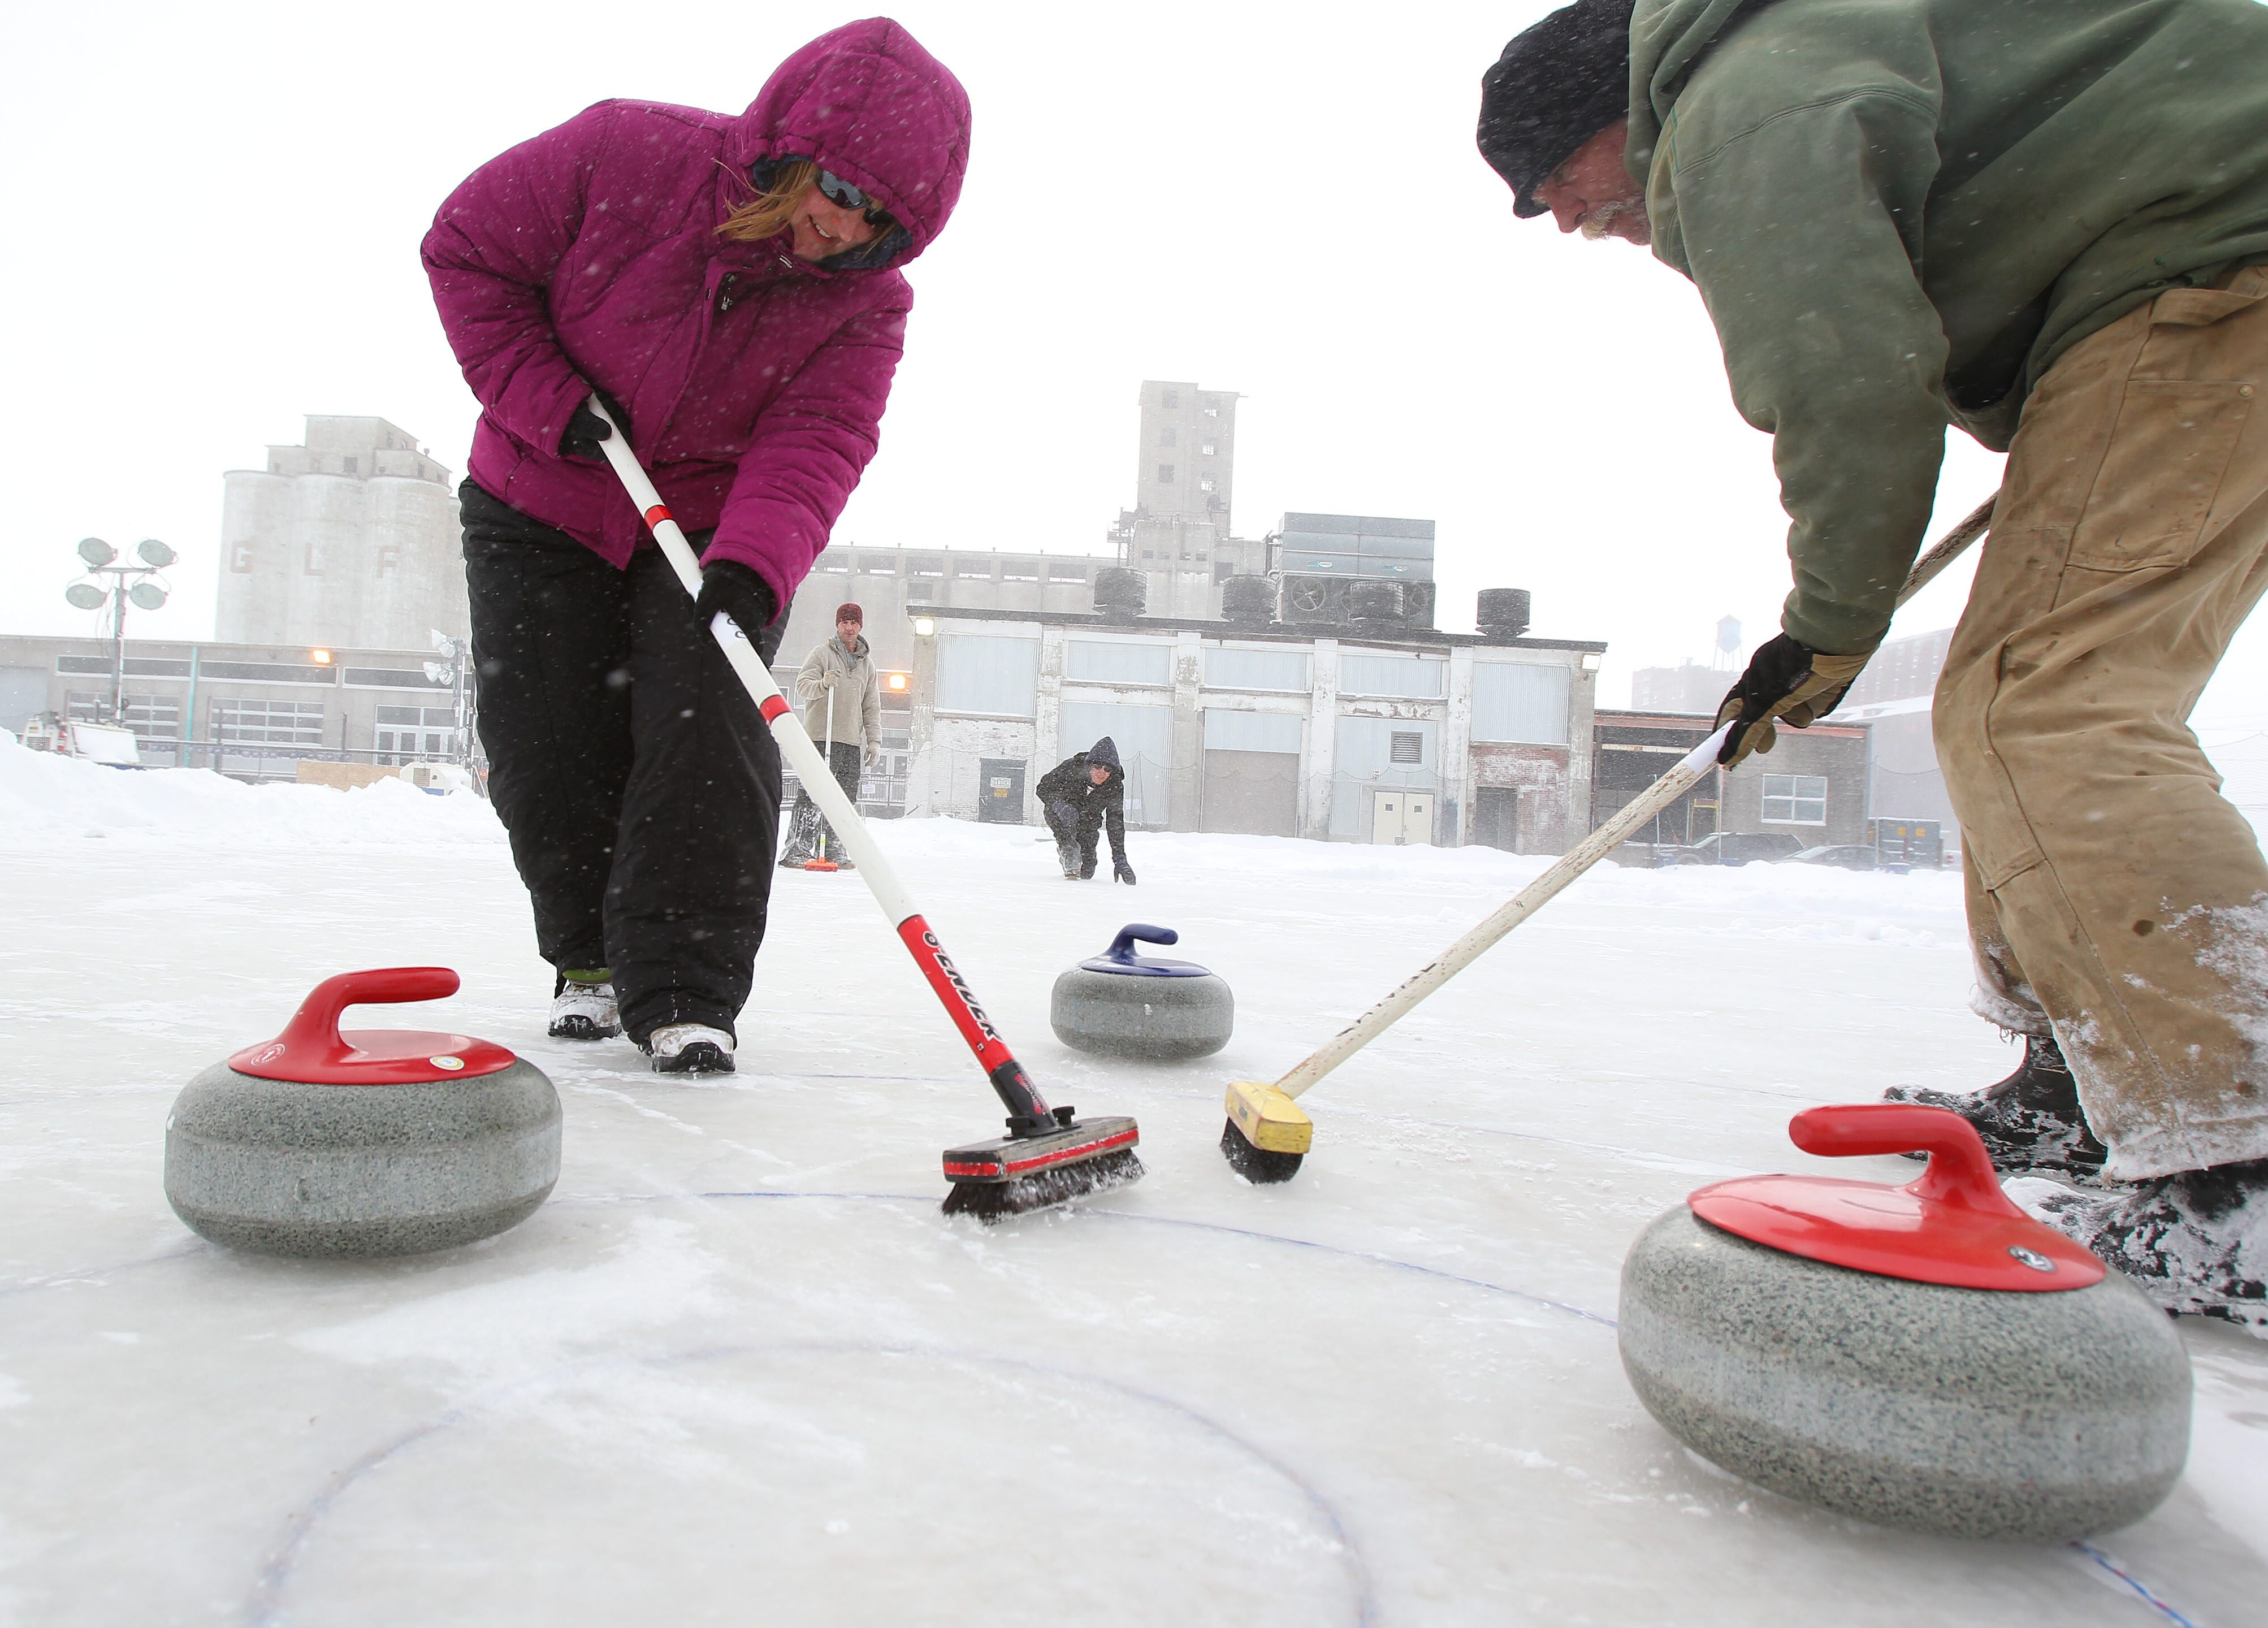 Local curlers – foreground, Danielle Buchbinder, left, and Rodney Cyrulik, and their teammates in background, Jeff Scott, center left, and Michael Rupp – get a workout at Buffalo RiverWorks.